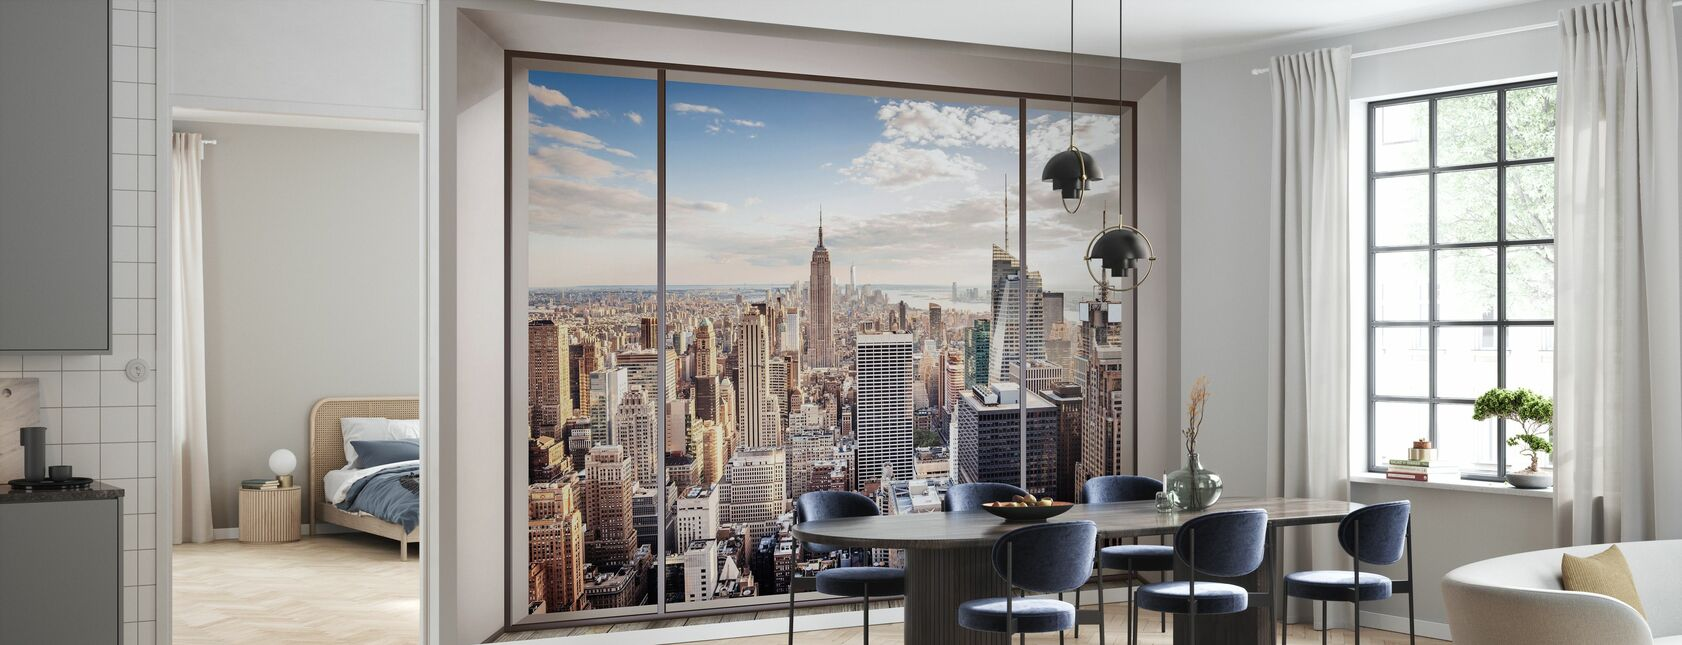 Manhattan Skyline - Wallpaper - Kitchen